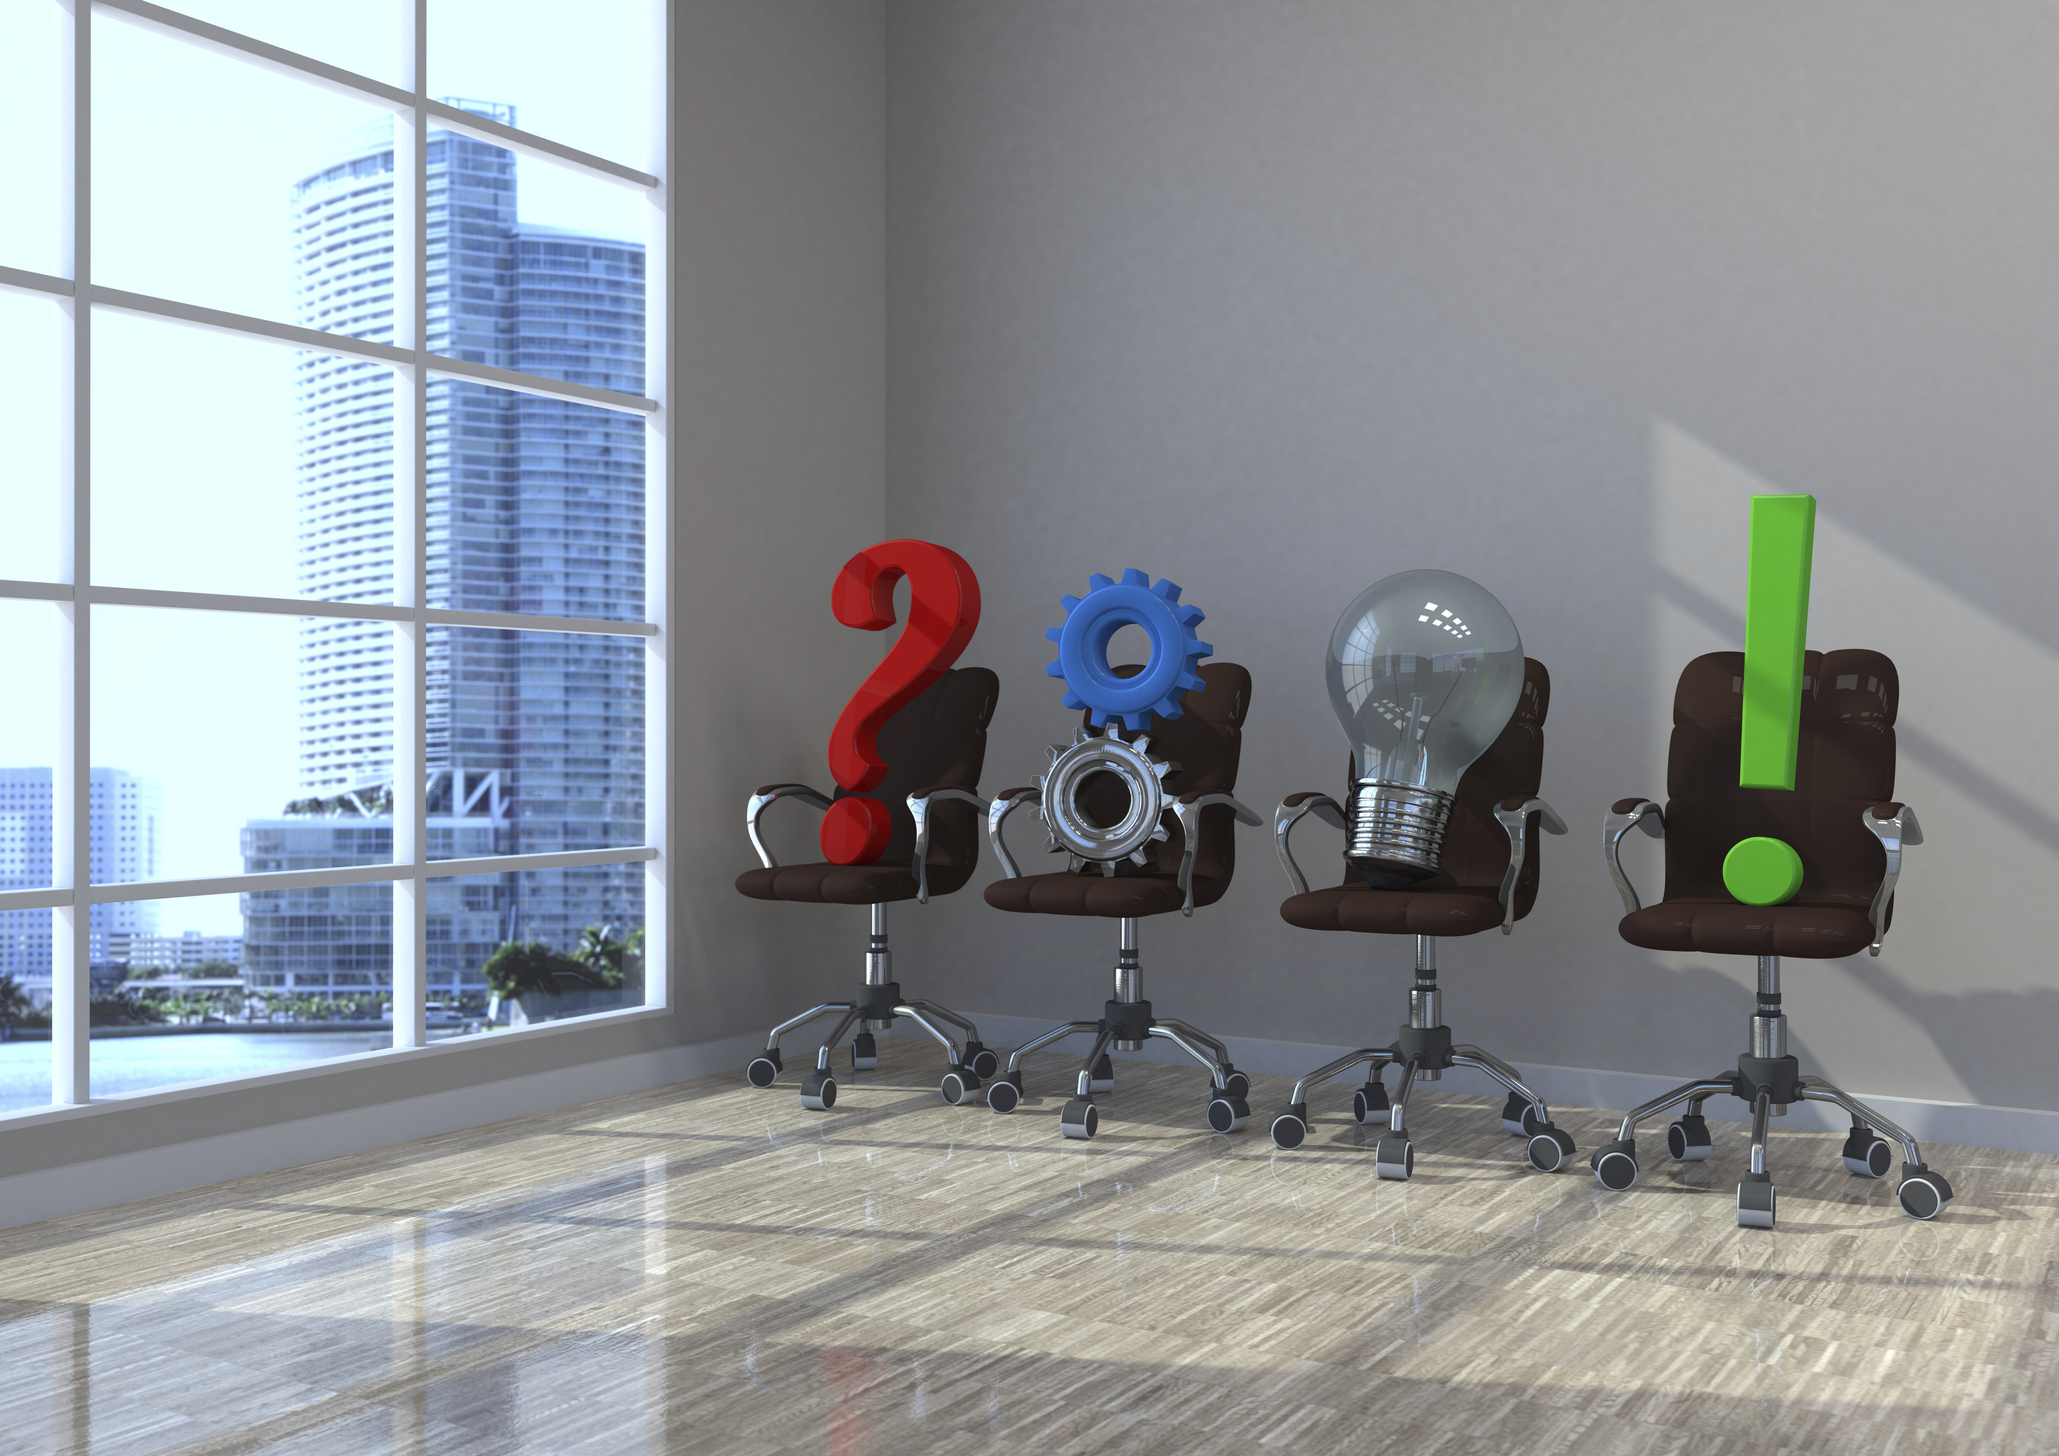 Image of a question mark, gears, a lightbulb, and an exclamation point on chairs in a waiting room.